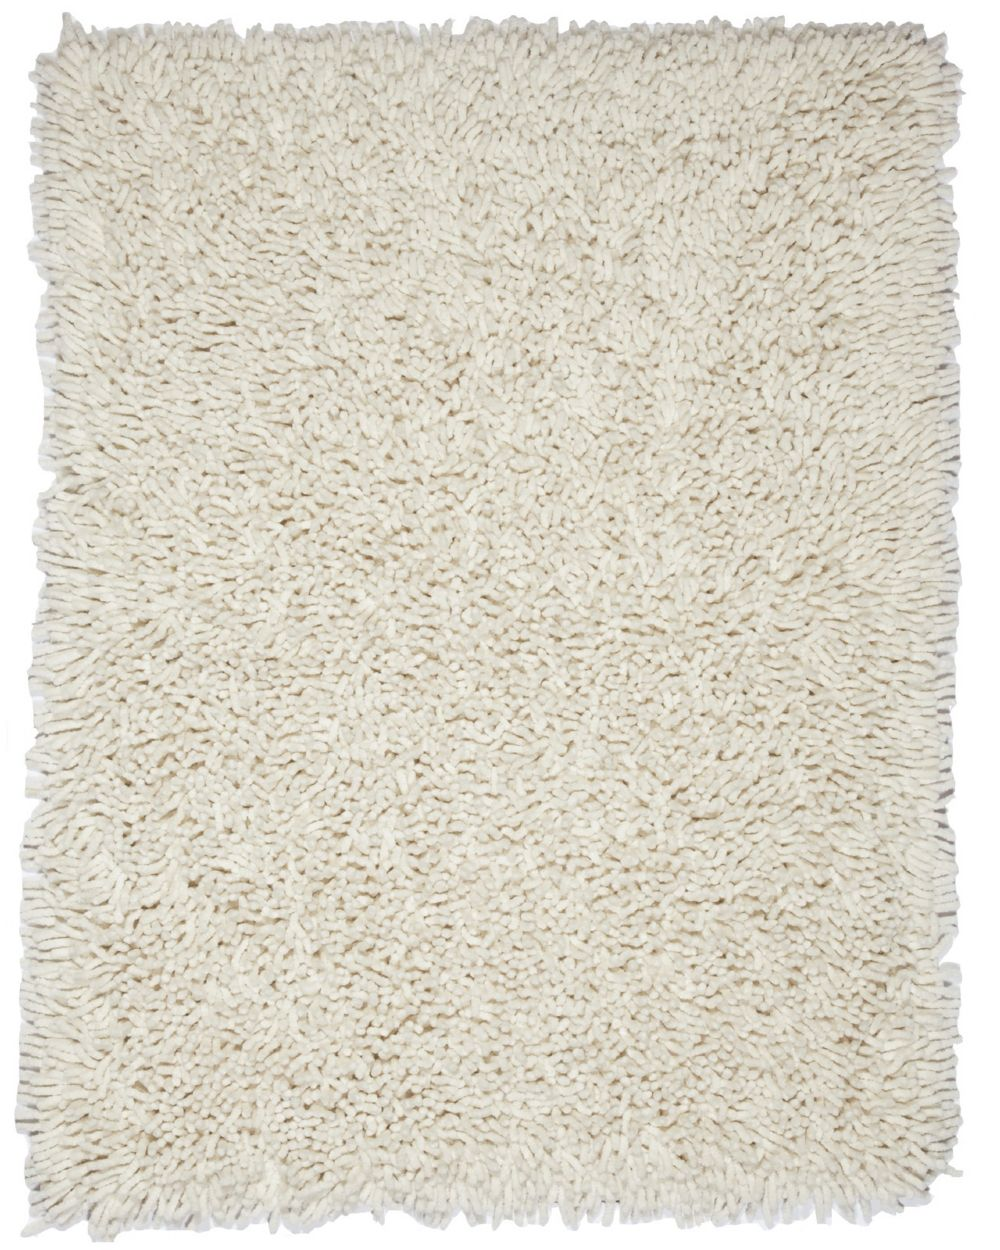 anji mountain silky shag shag area rug collection